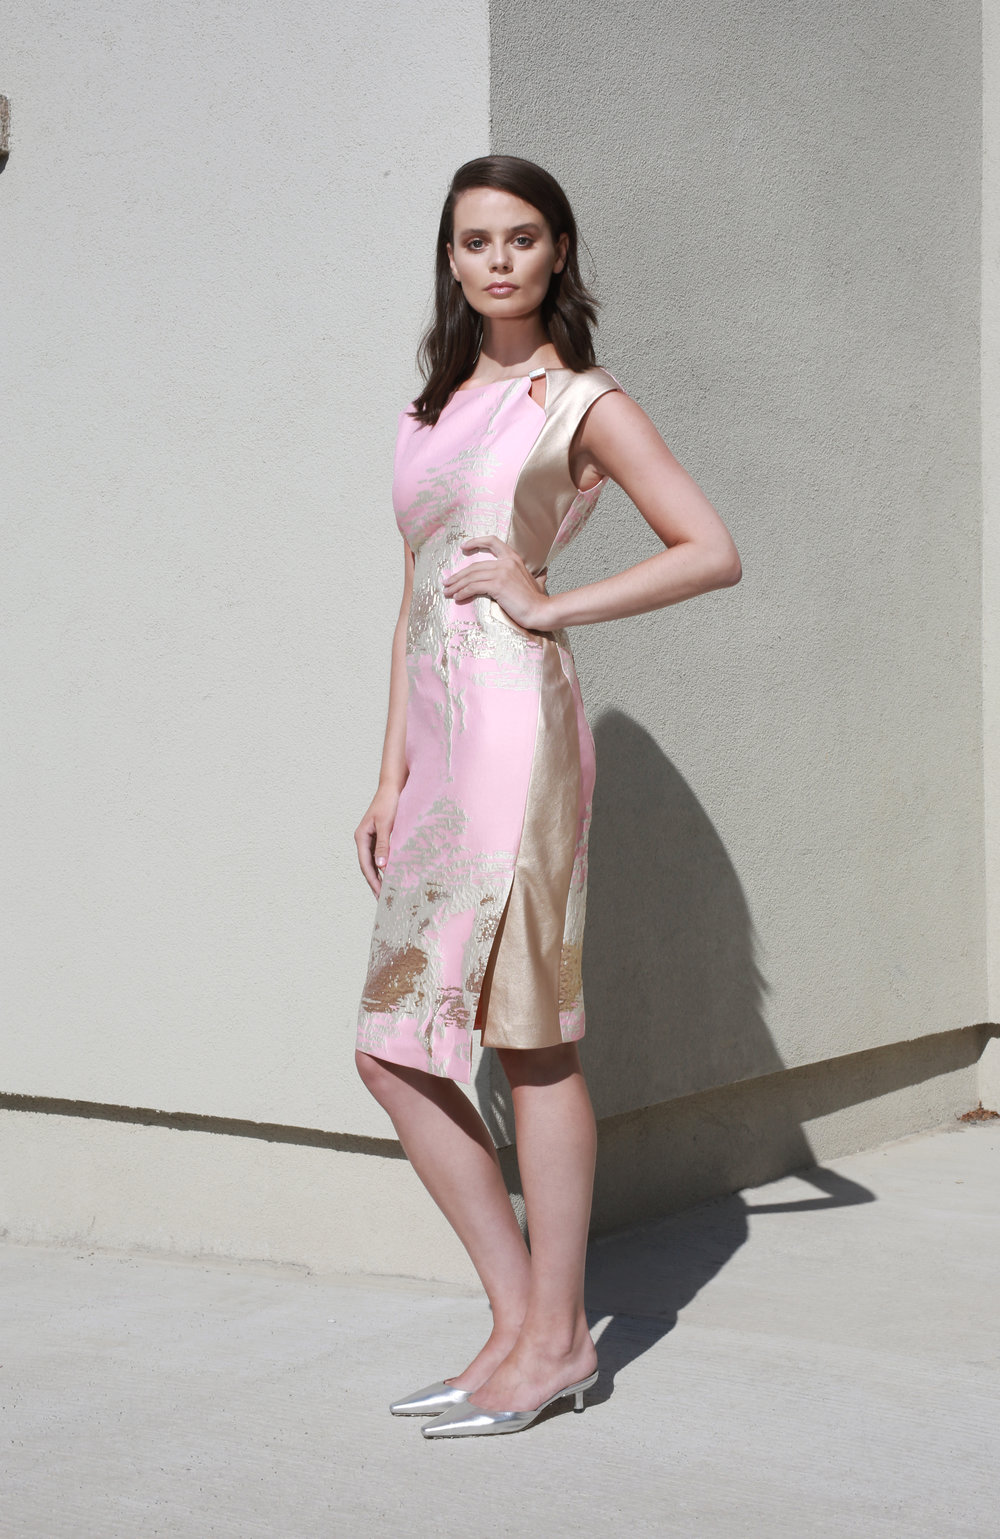 Sarah Dress in Pink and Gold €270.00